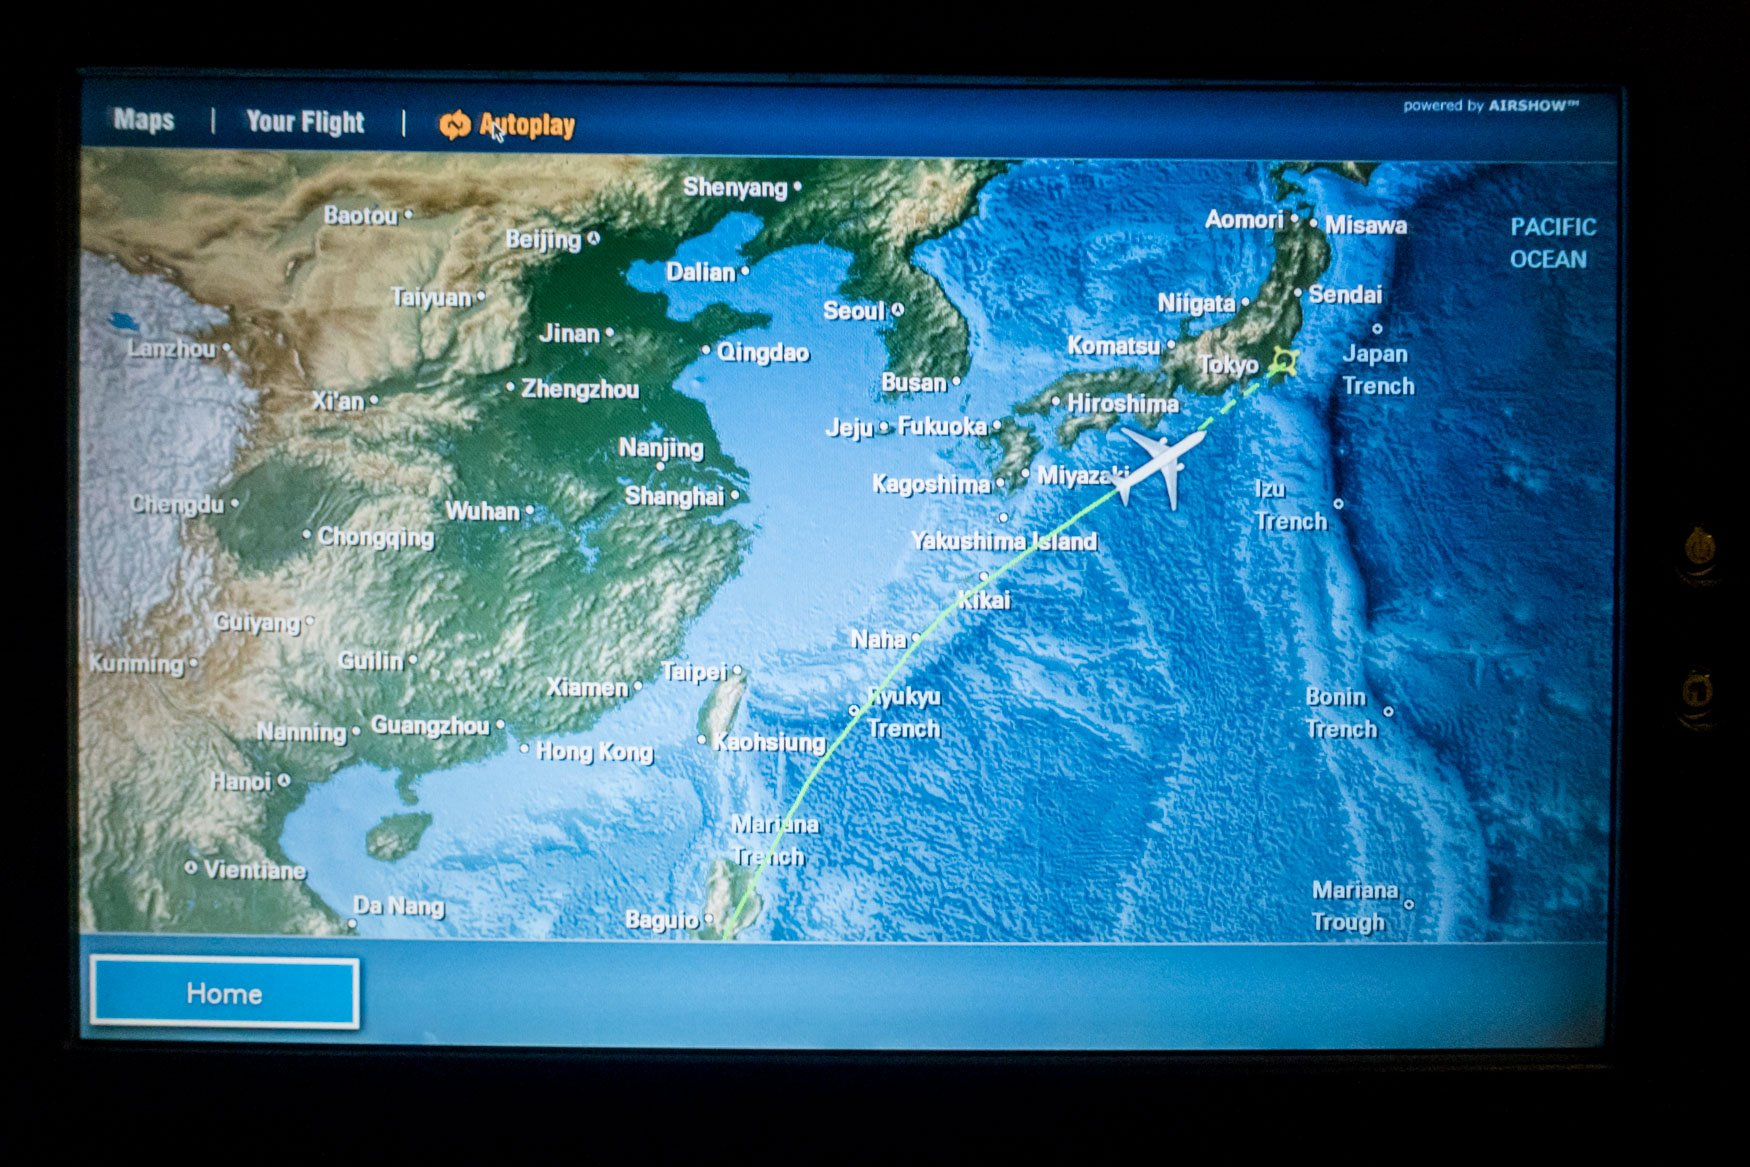 JAL In-Flight Map